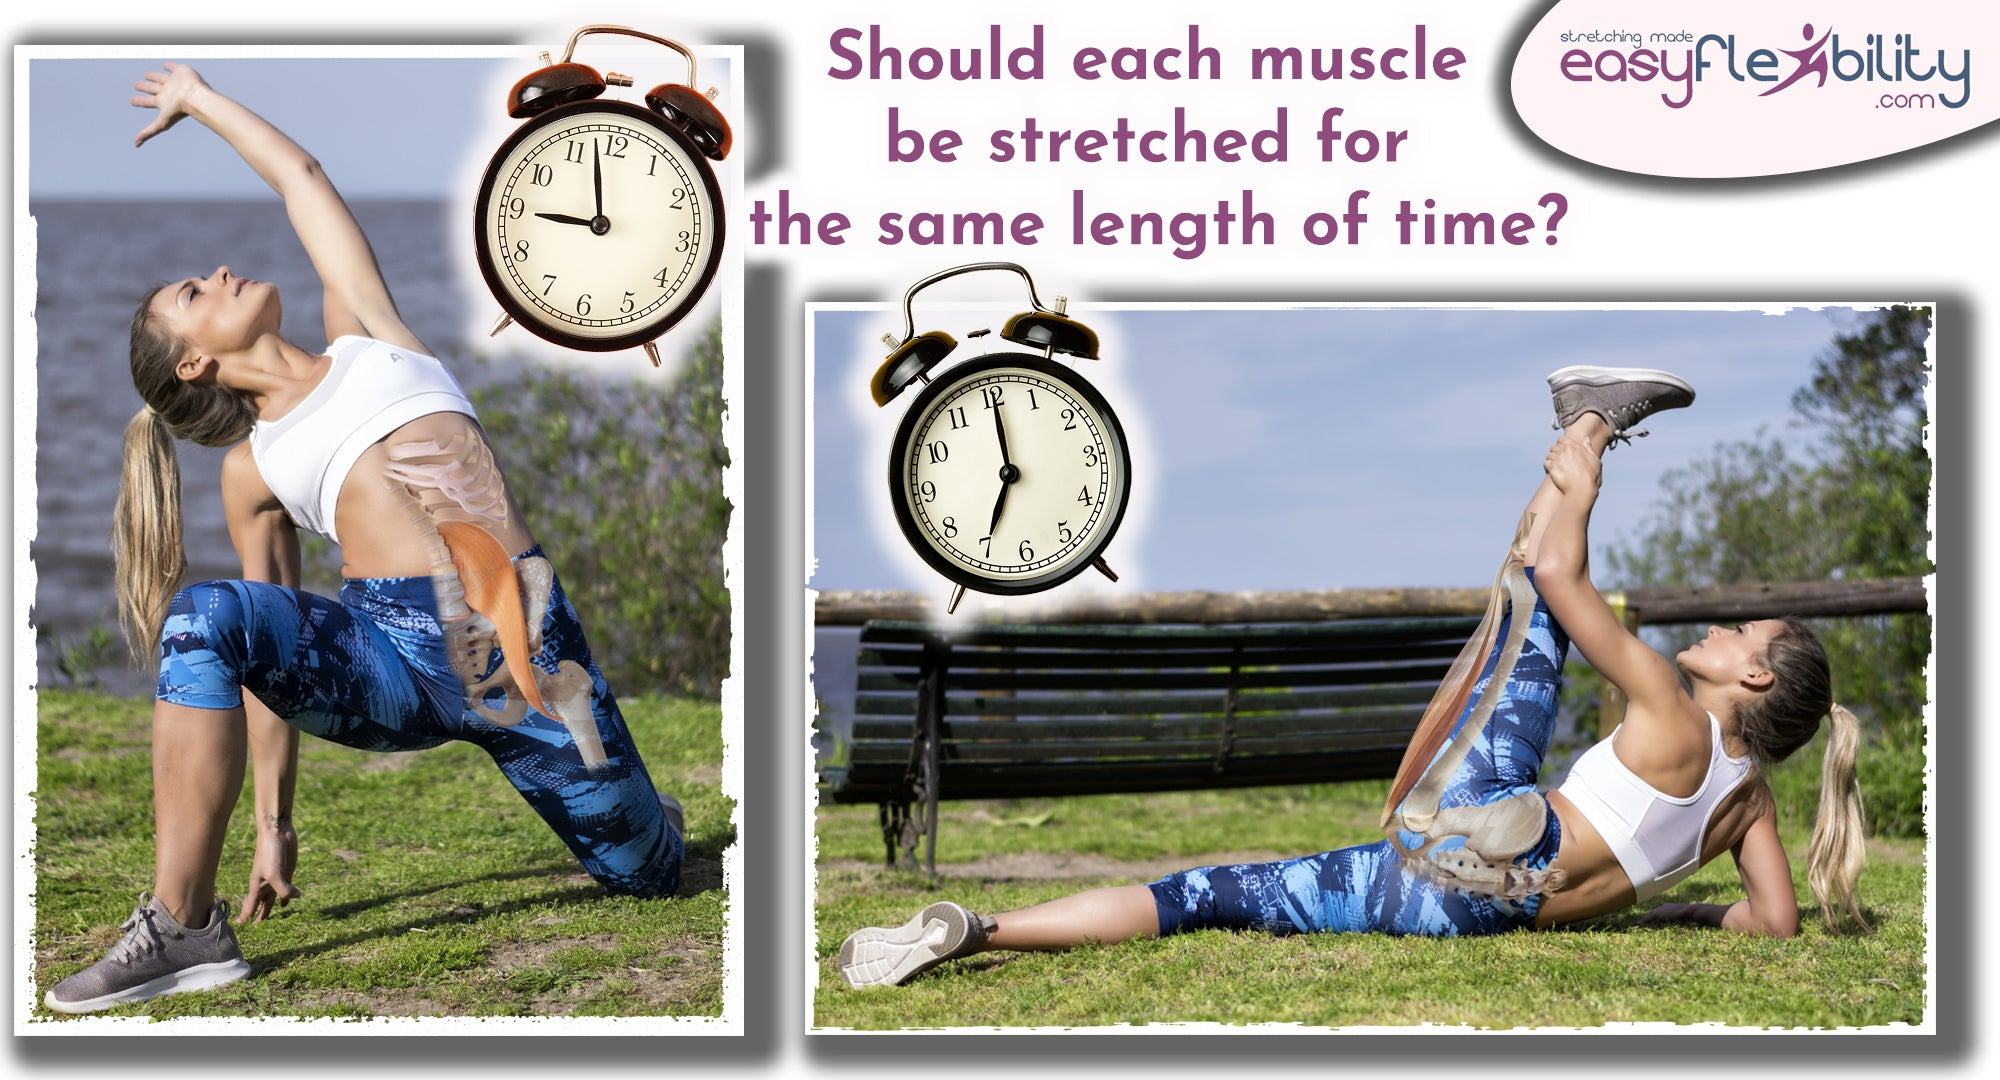 Should each muscle be stretched for the same length of time?